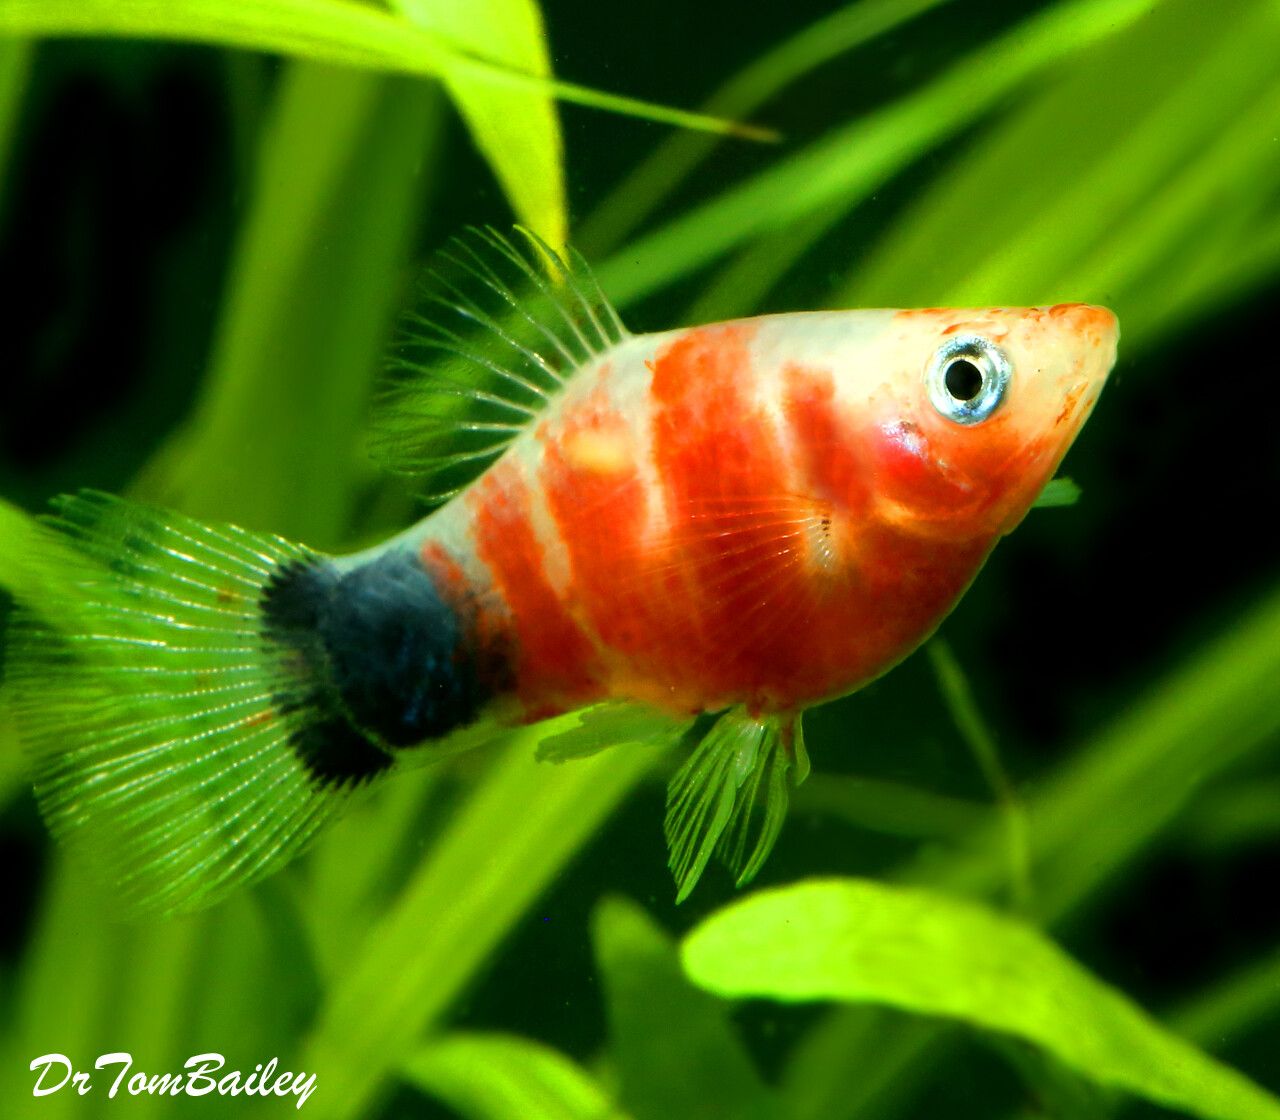 "Premium Rare and New, Tiger Ruby Mickey Mouse Platy, 1"" to 1.5"" long"